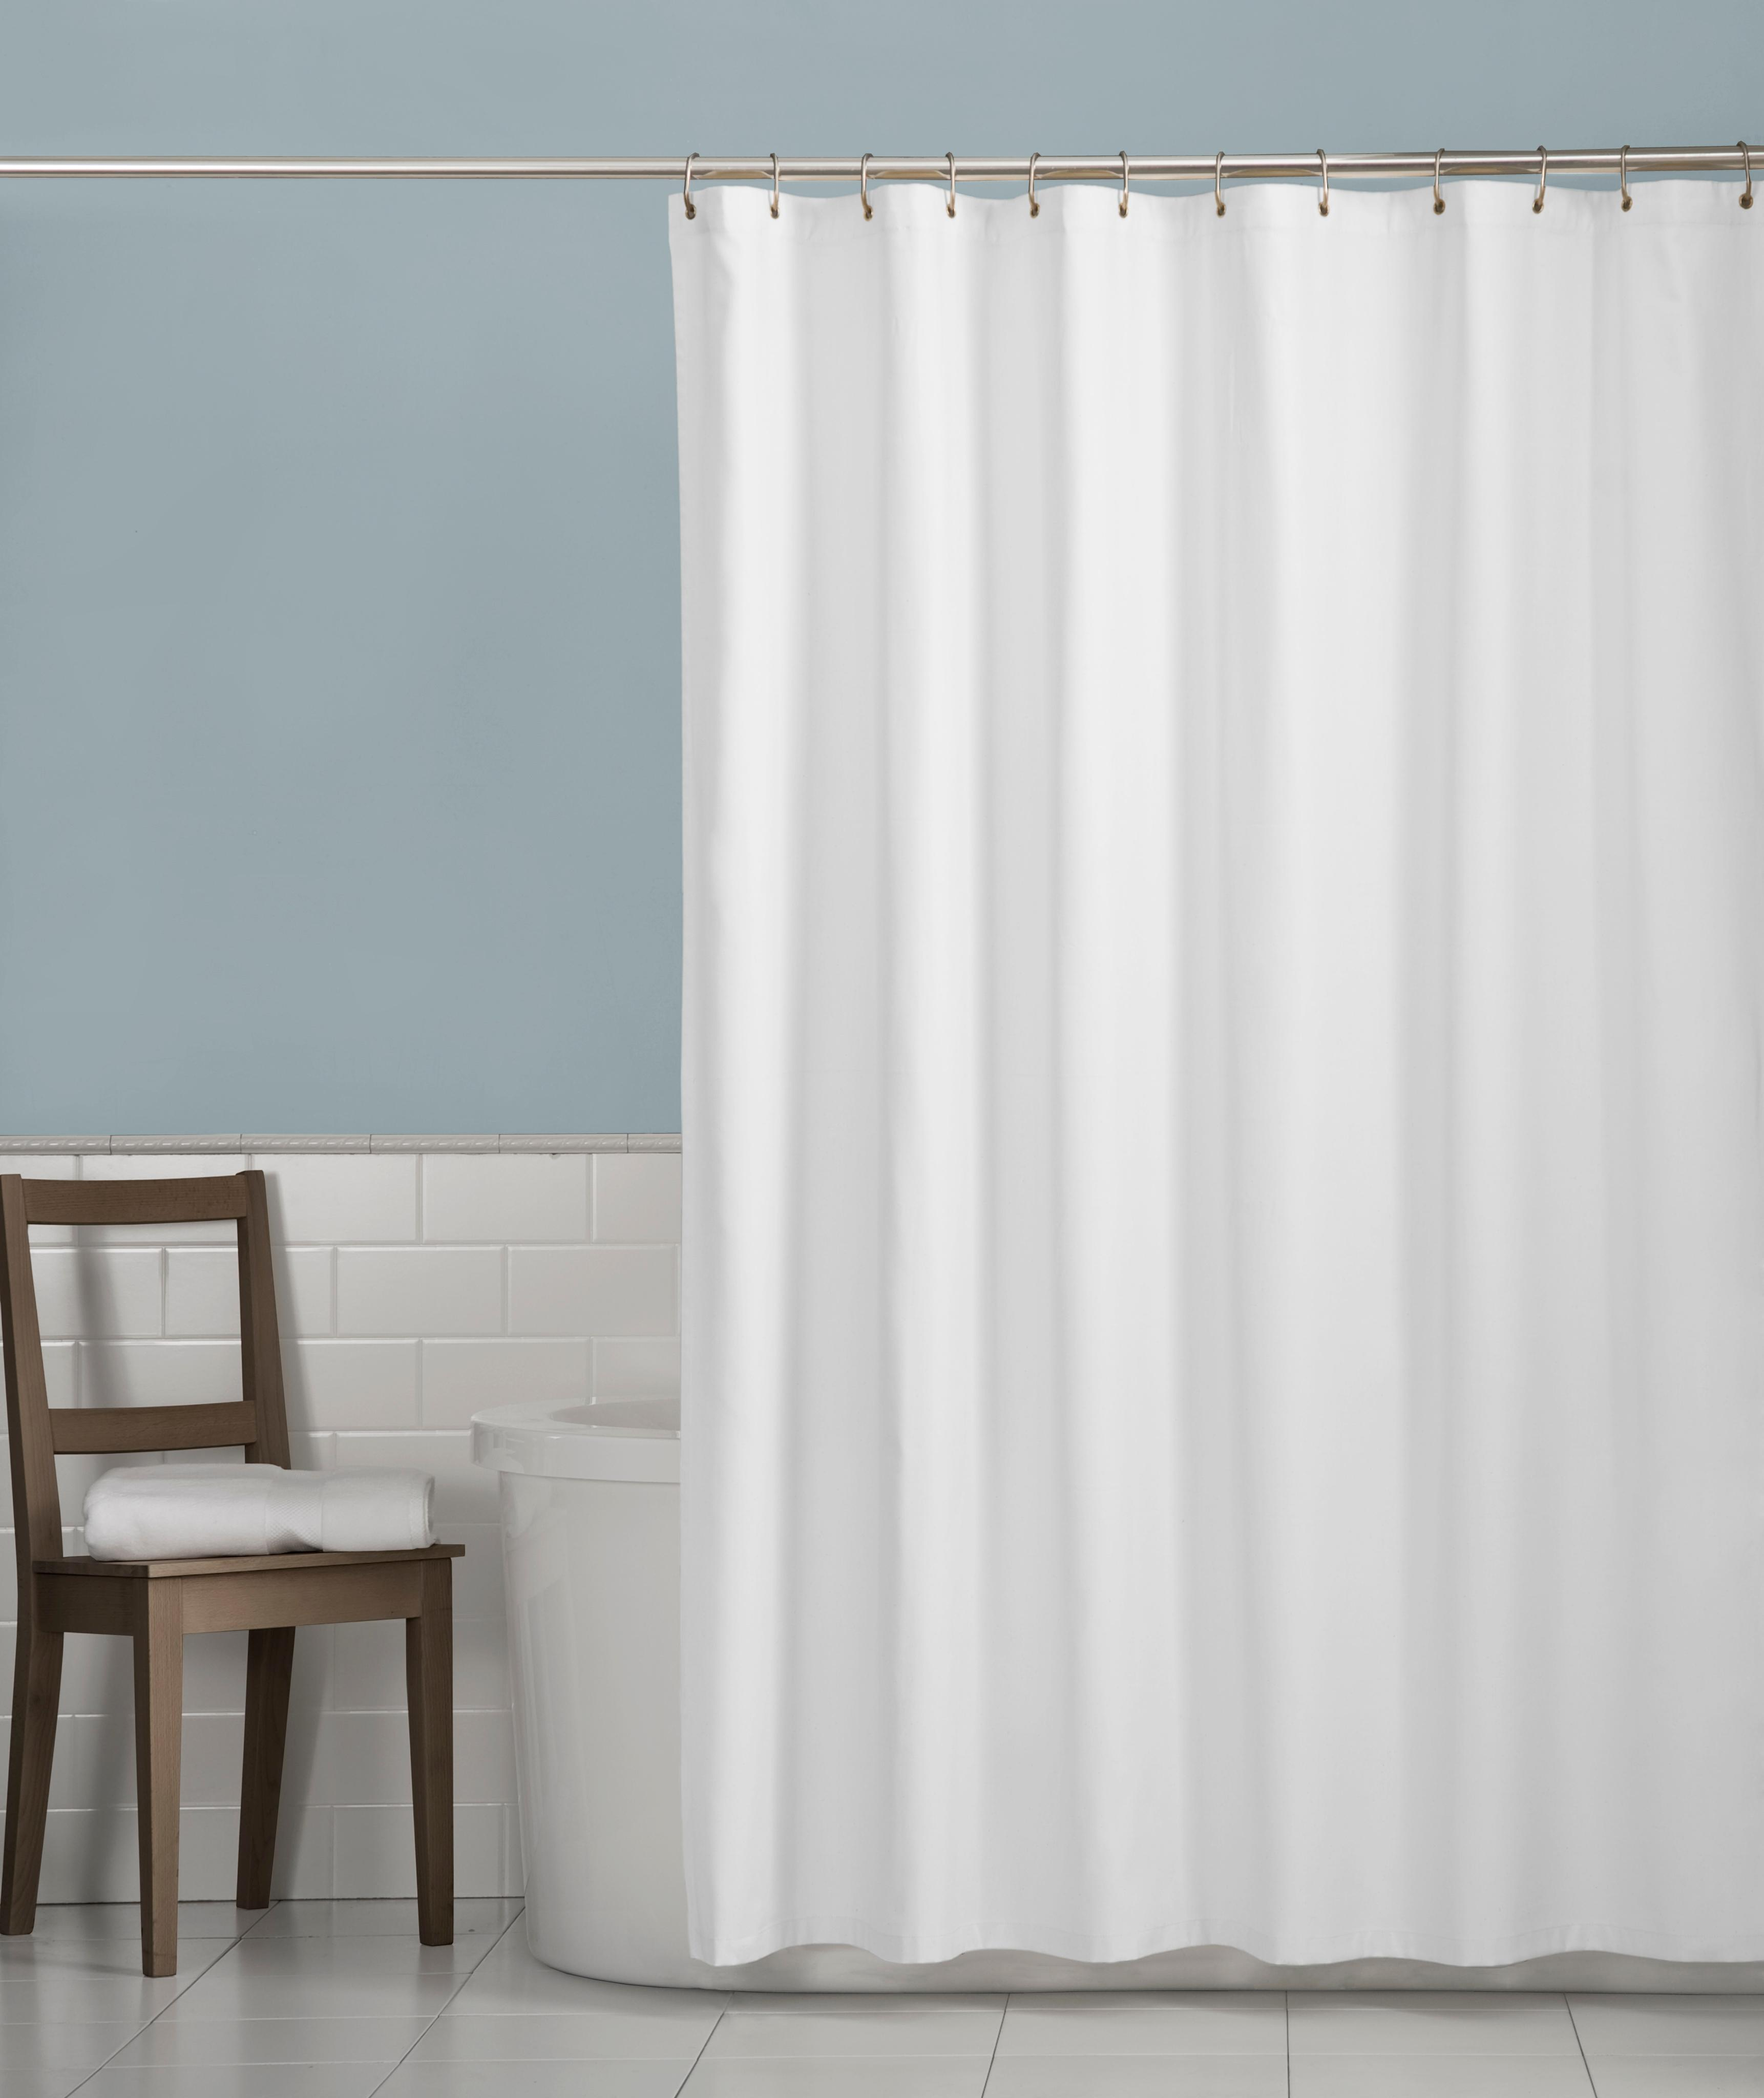 Shower Curtain Liner | Hookless Shower Curtain Liner | Peva Shower Curtain Liner Safe